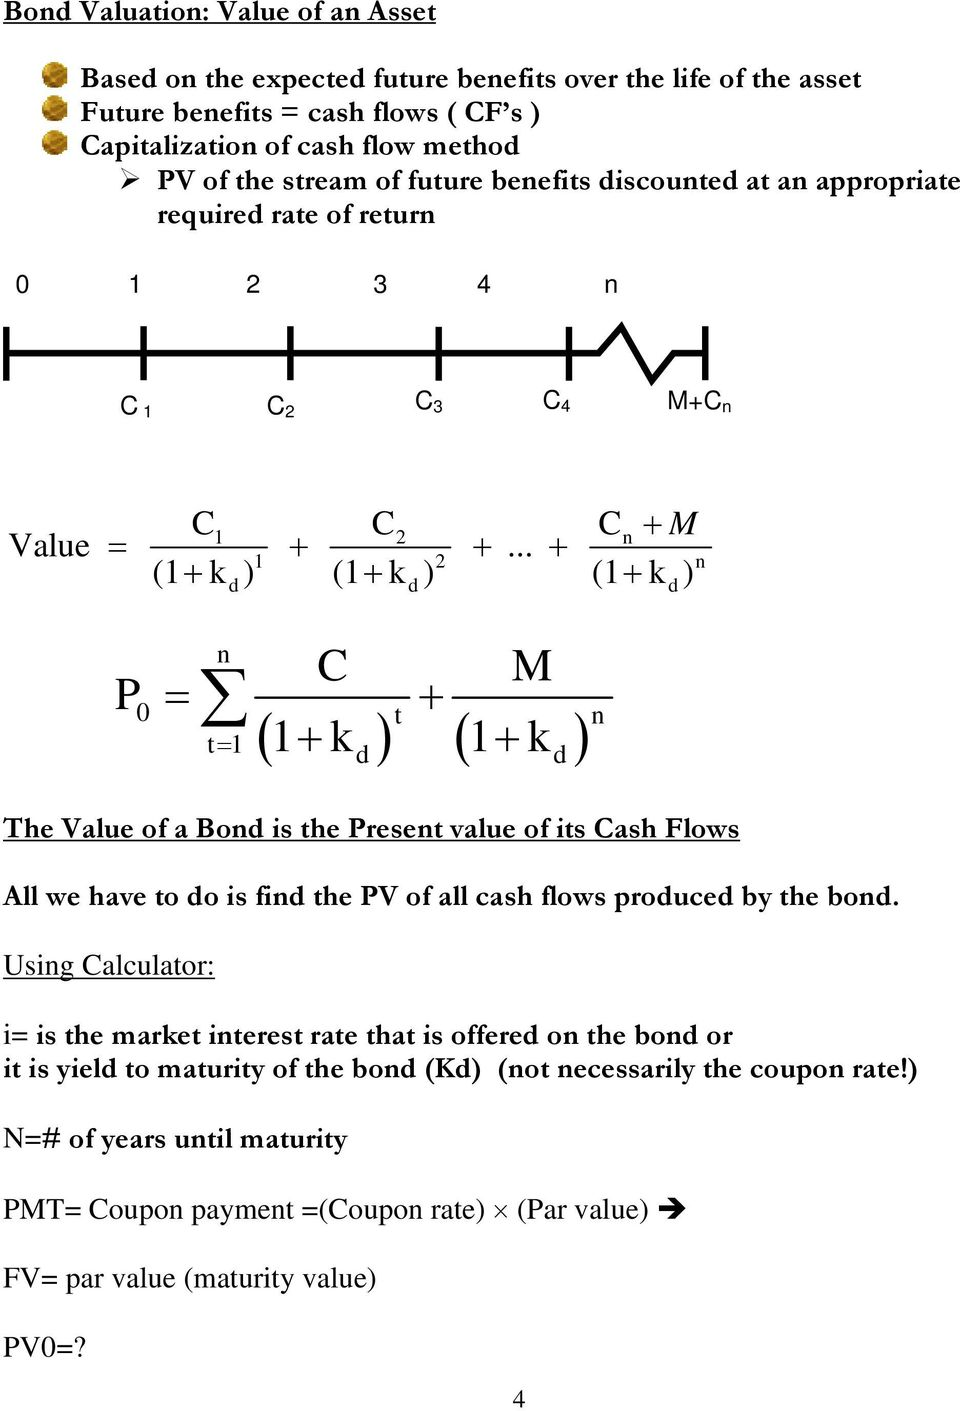 .. + (1+ k ) (1+ k ) (1+ k ) P 1 2 n 1 2 n d d d n C = + M ( 1+ k ) ( 1+ k ) 0 t n t= 1 d d The Value of a Bond is the Present value of its Cash Flows All we have to do is find the PV of all cash